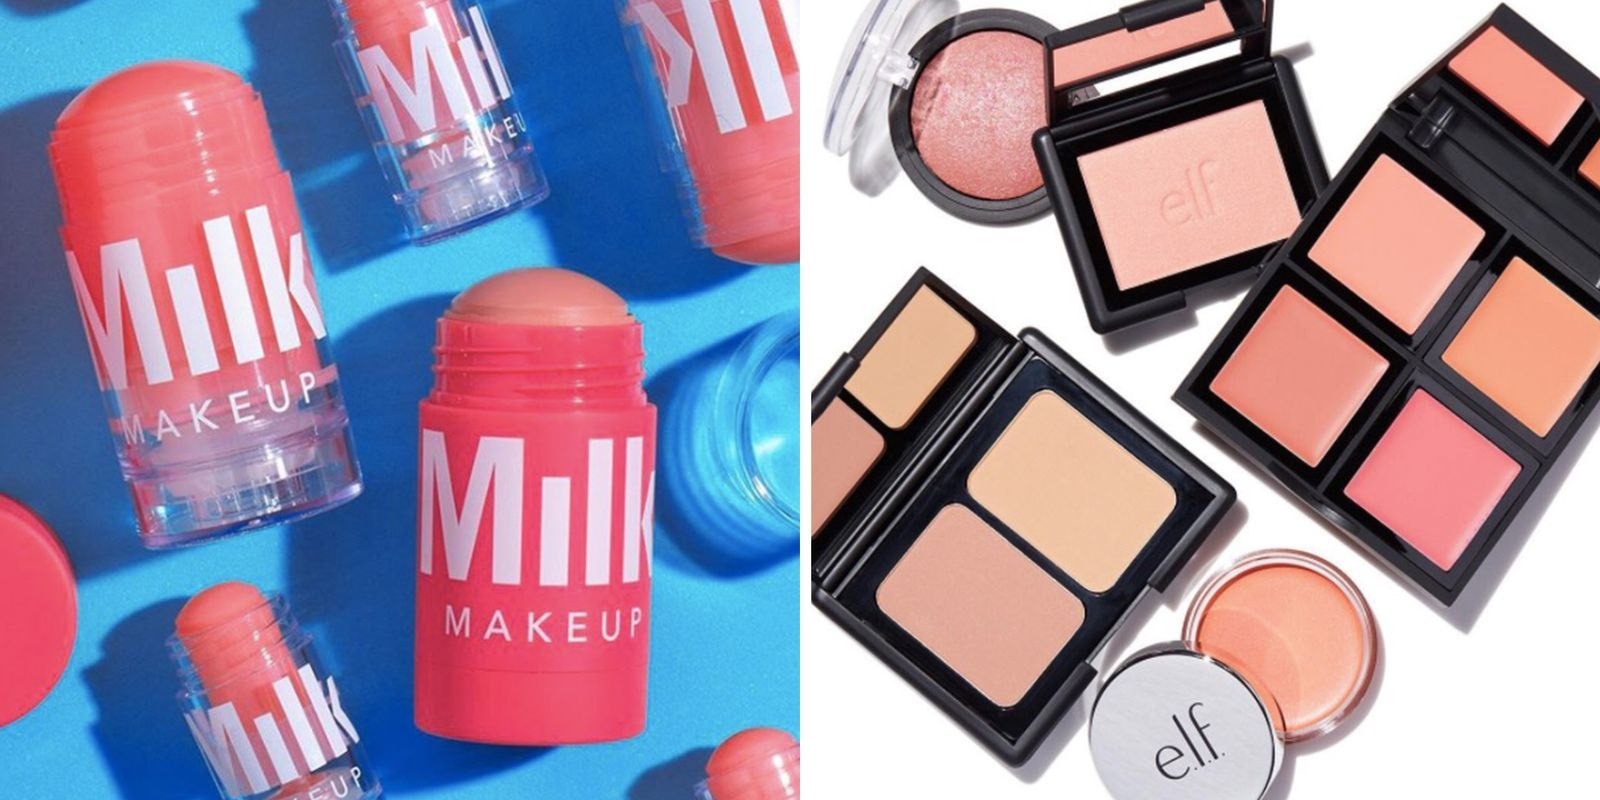 13 vegan makeup brands you need to know about in 2020